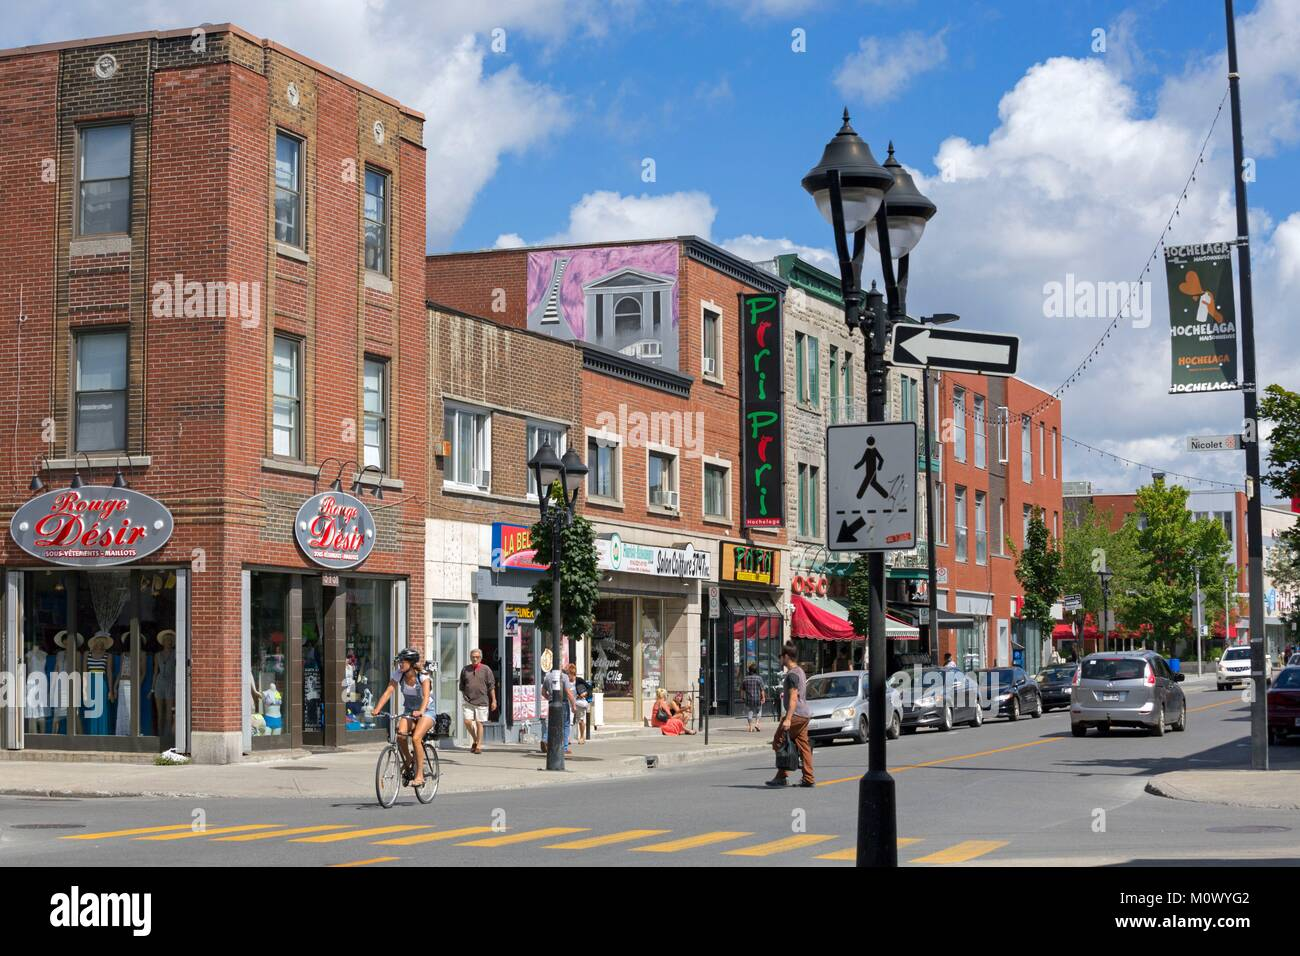 Canada,Quebec province,Montreal,the Hochelaga-Maisonneuve neighborhood,also known as HOMA or Hochelag,Ontario East - Stock Image